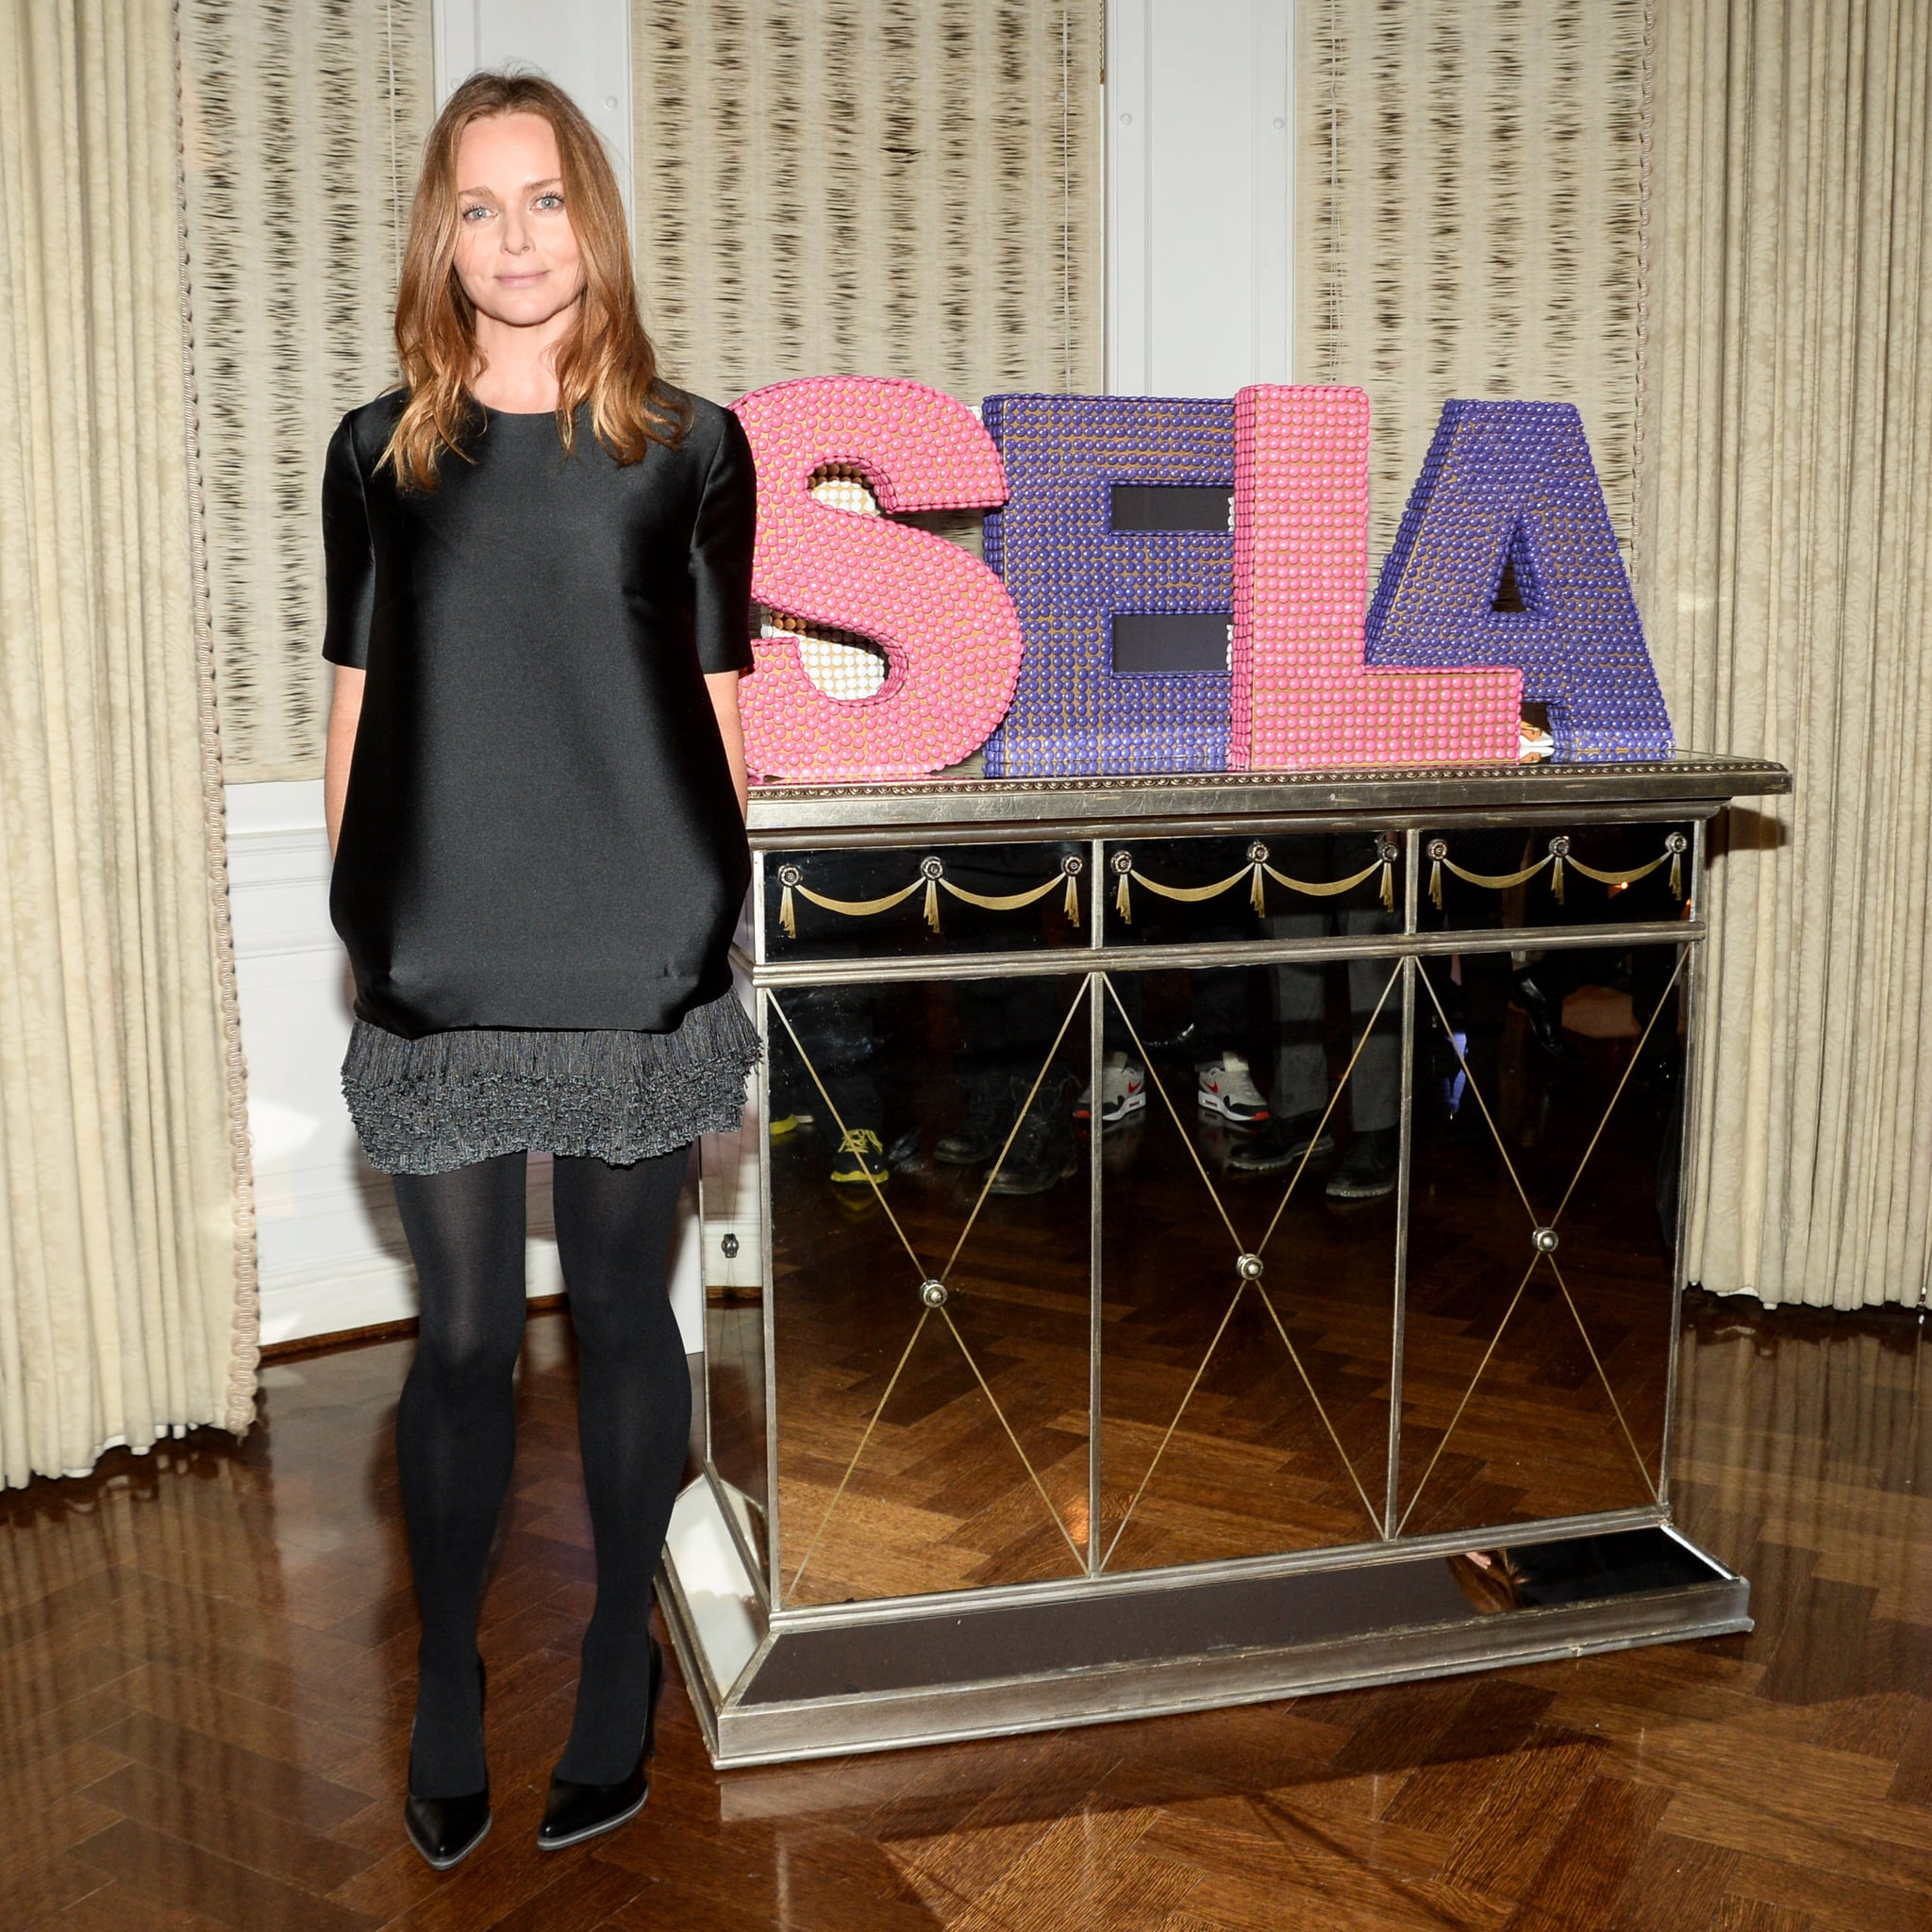 Stella McCartney at the Stella McCartney Pre-Fall 2014 presentation.